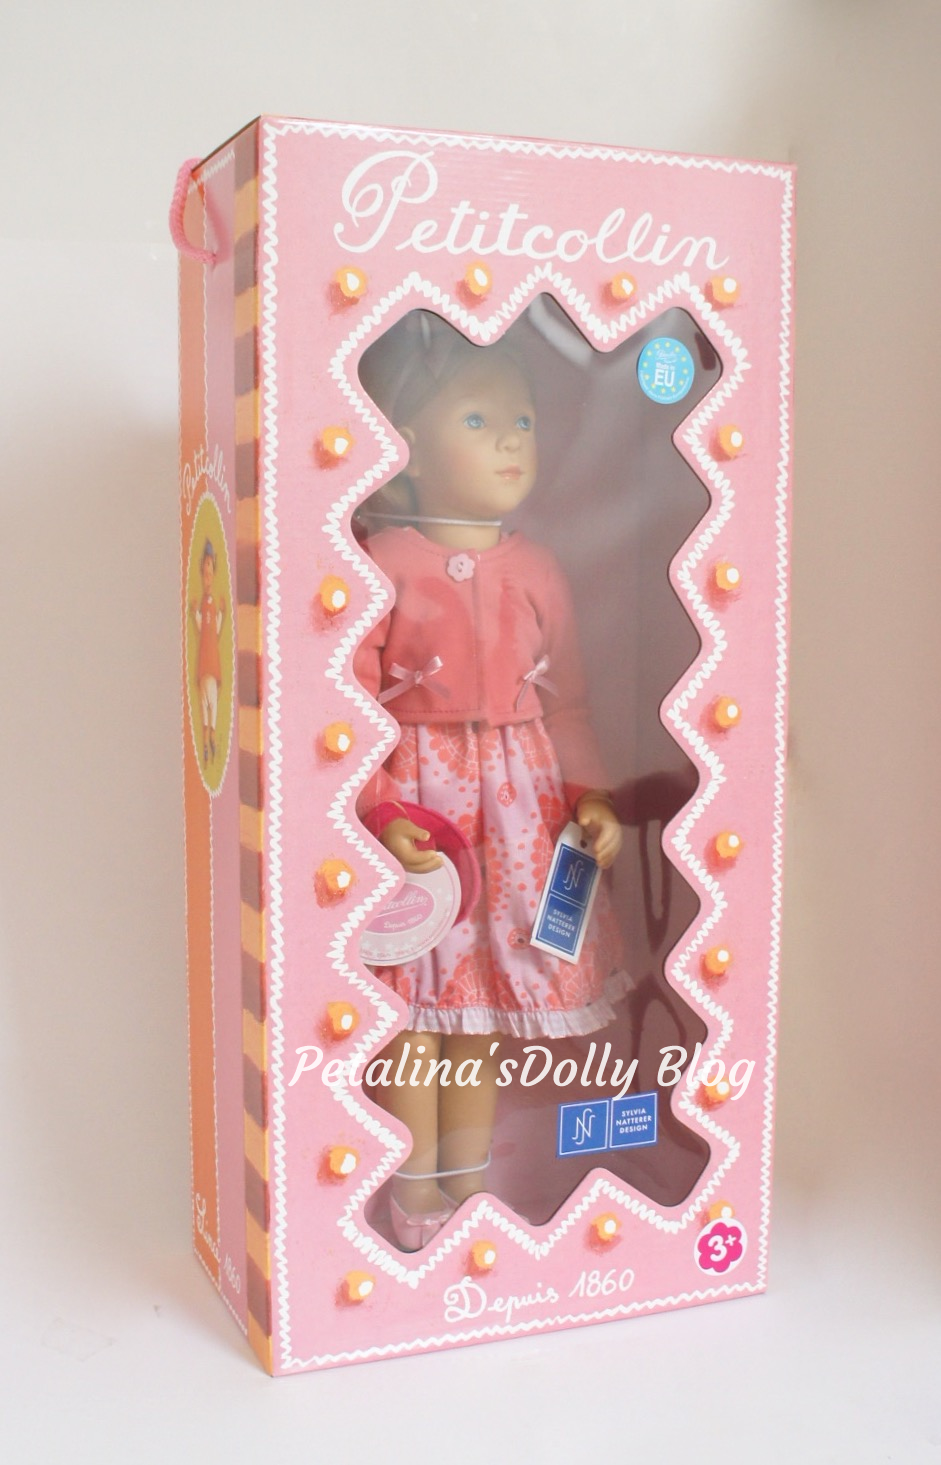 Finouche doll in box